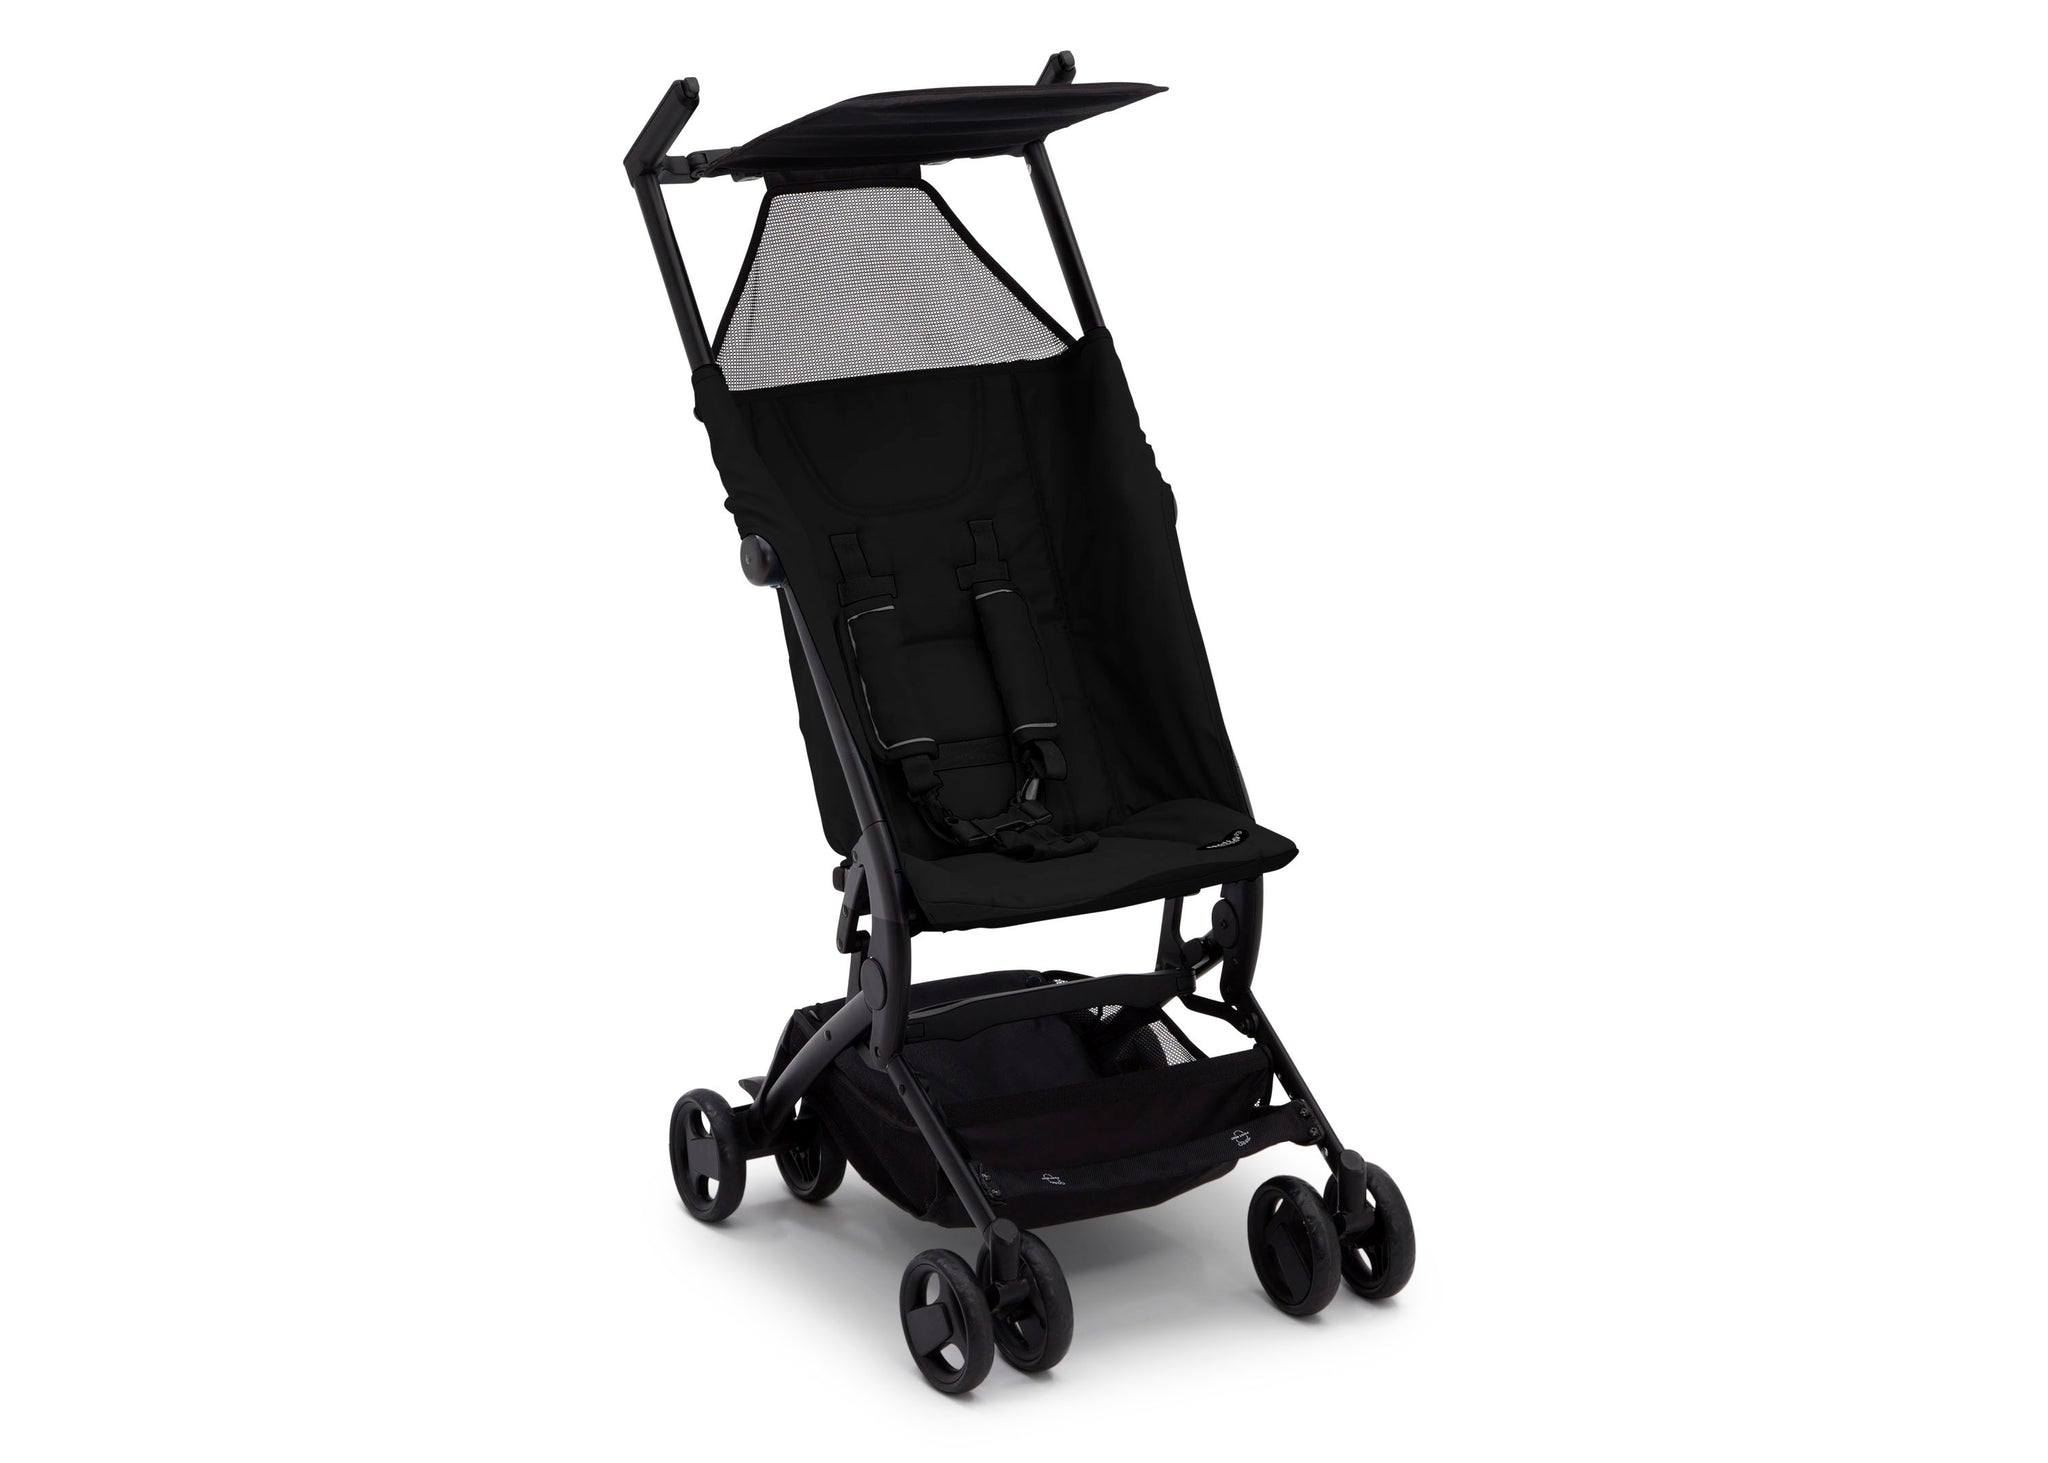 Delta Children Ultimate Fold N Go Compact Travel Stroller Black (001), Right Side View a3a